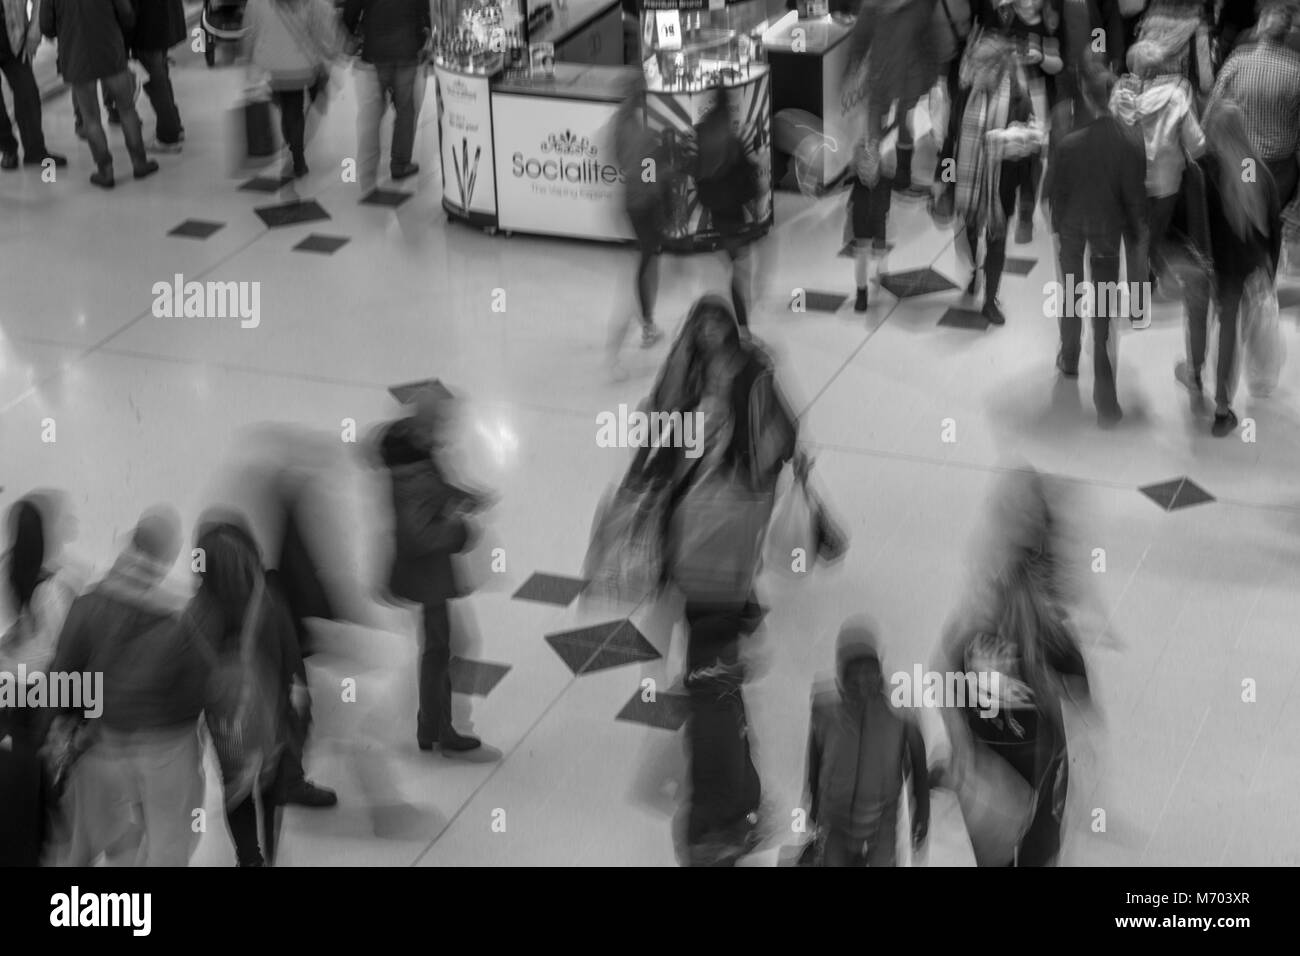 People walking through a shopping mall, taken with a slow exposure to blur the people - Stock Image